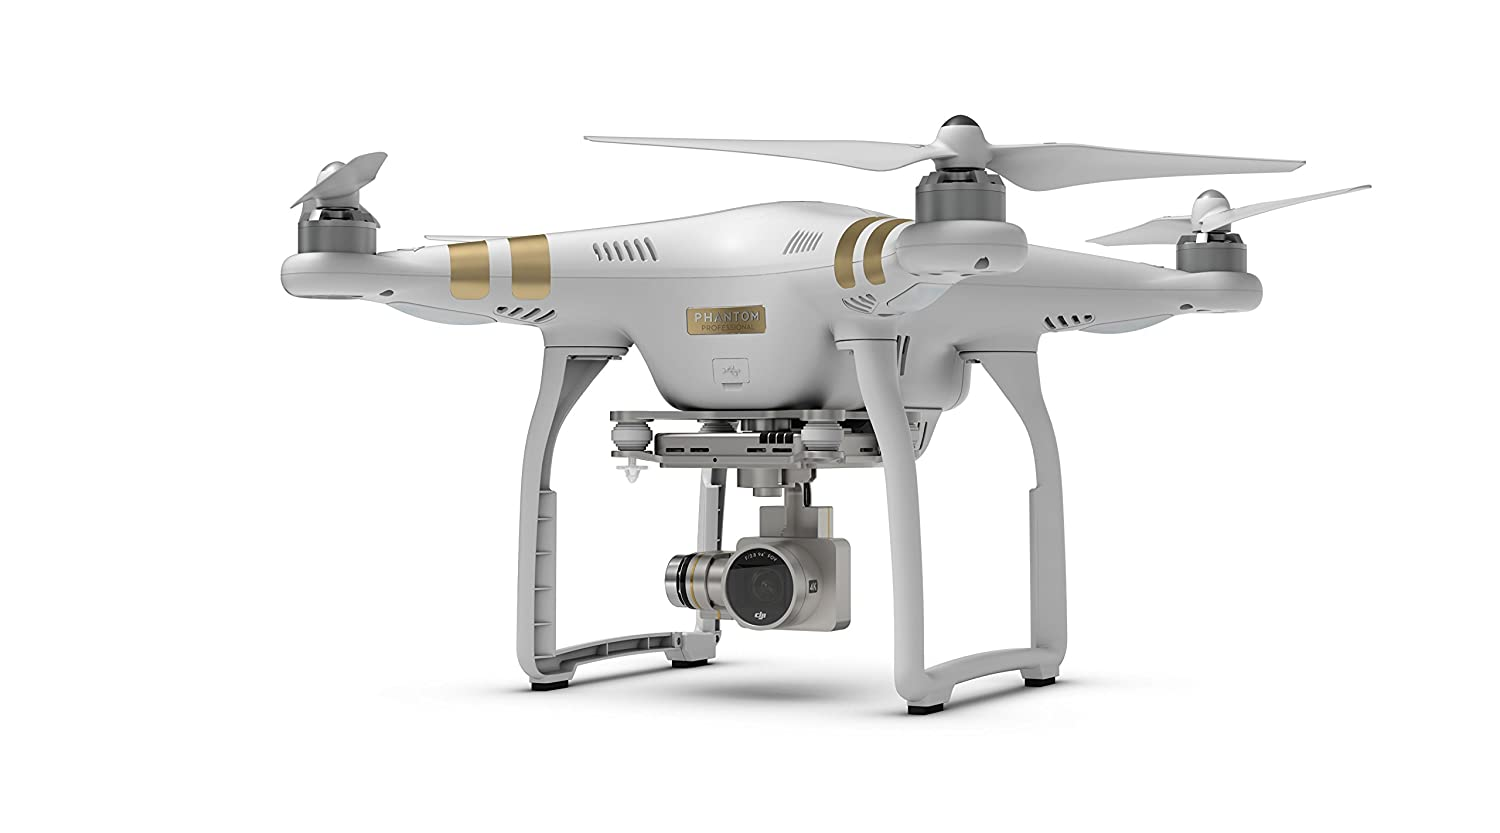 Amazon DJI Phantom 3 Professional Quadcopter 4K UHD Video Camera Drone Photo